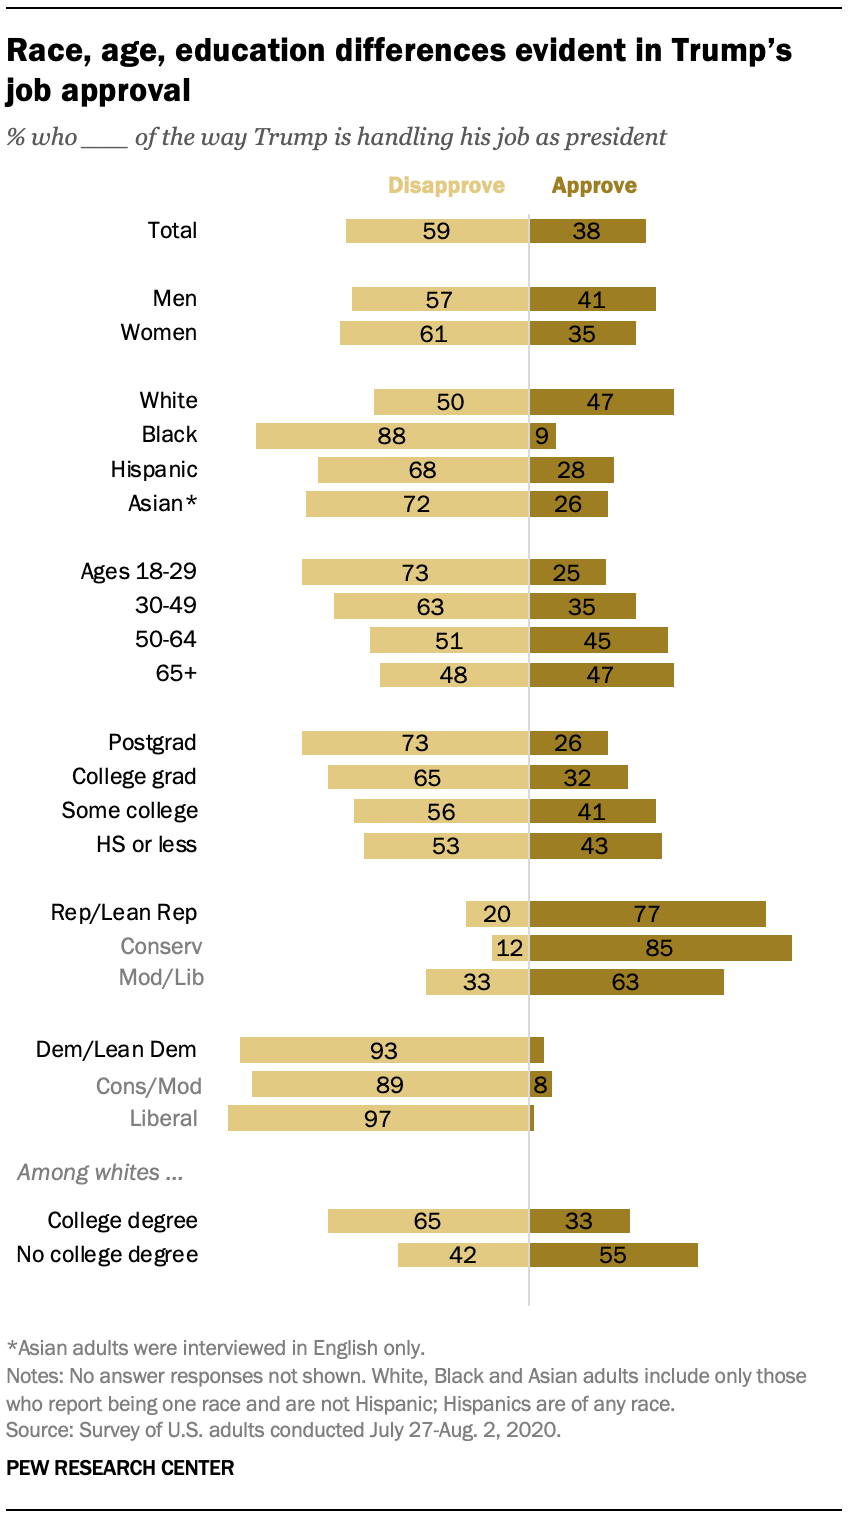 Race, age, education differences evident in Trump's job approval